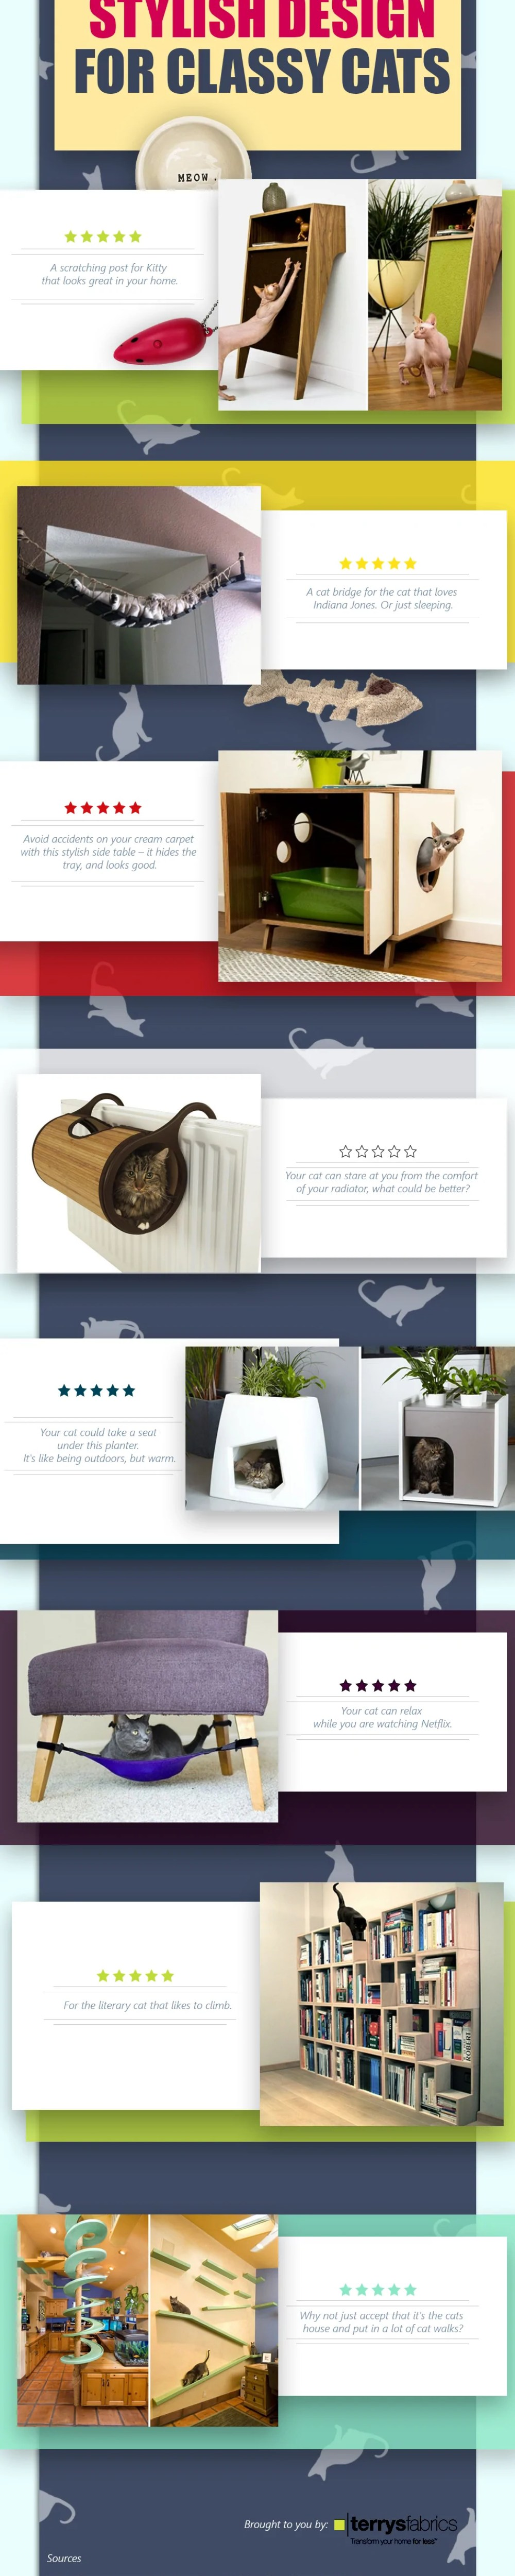 Stylish design for classy cats